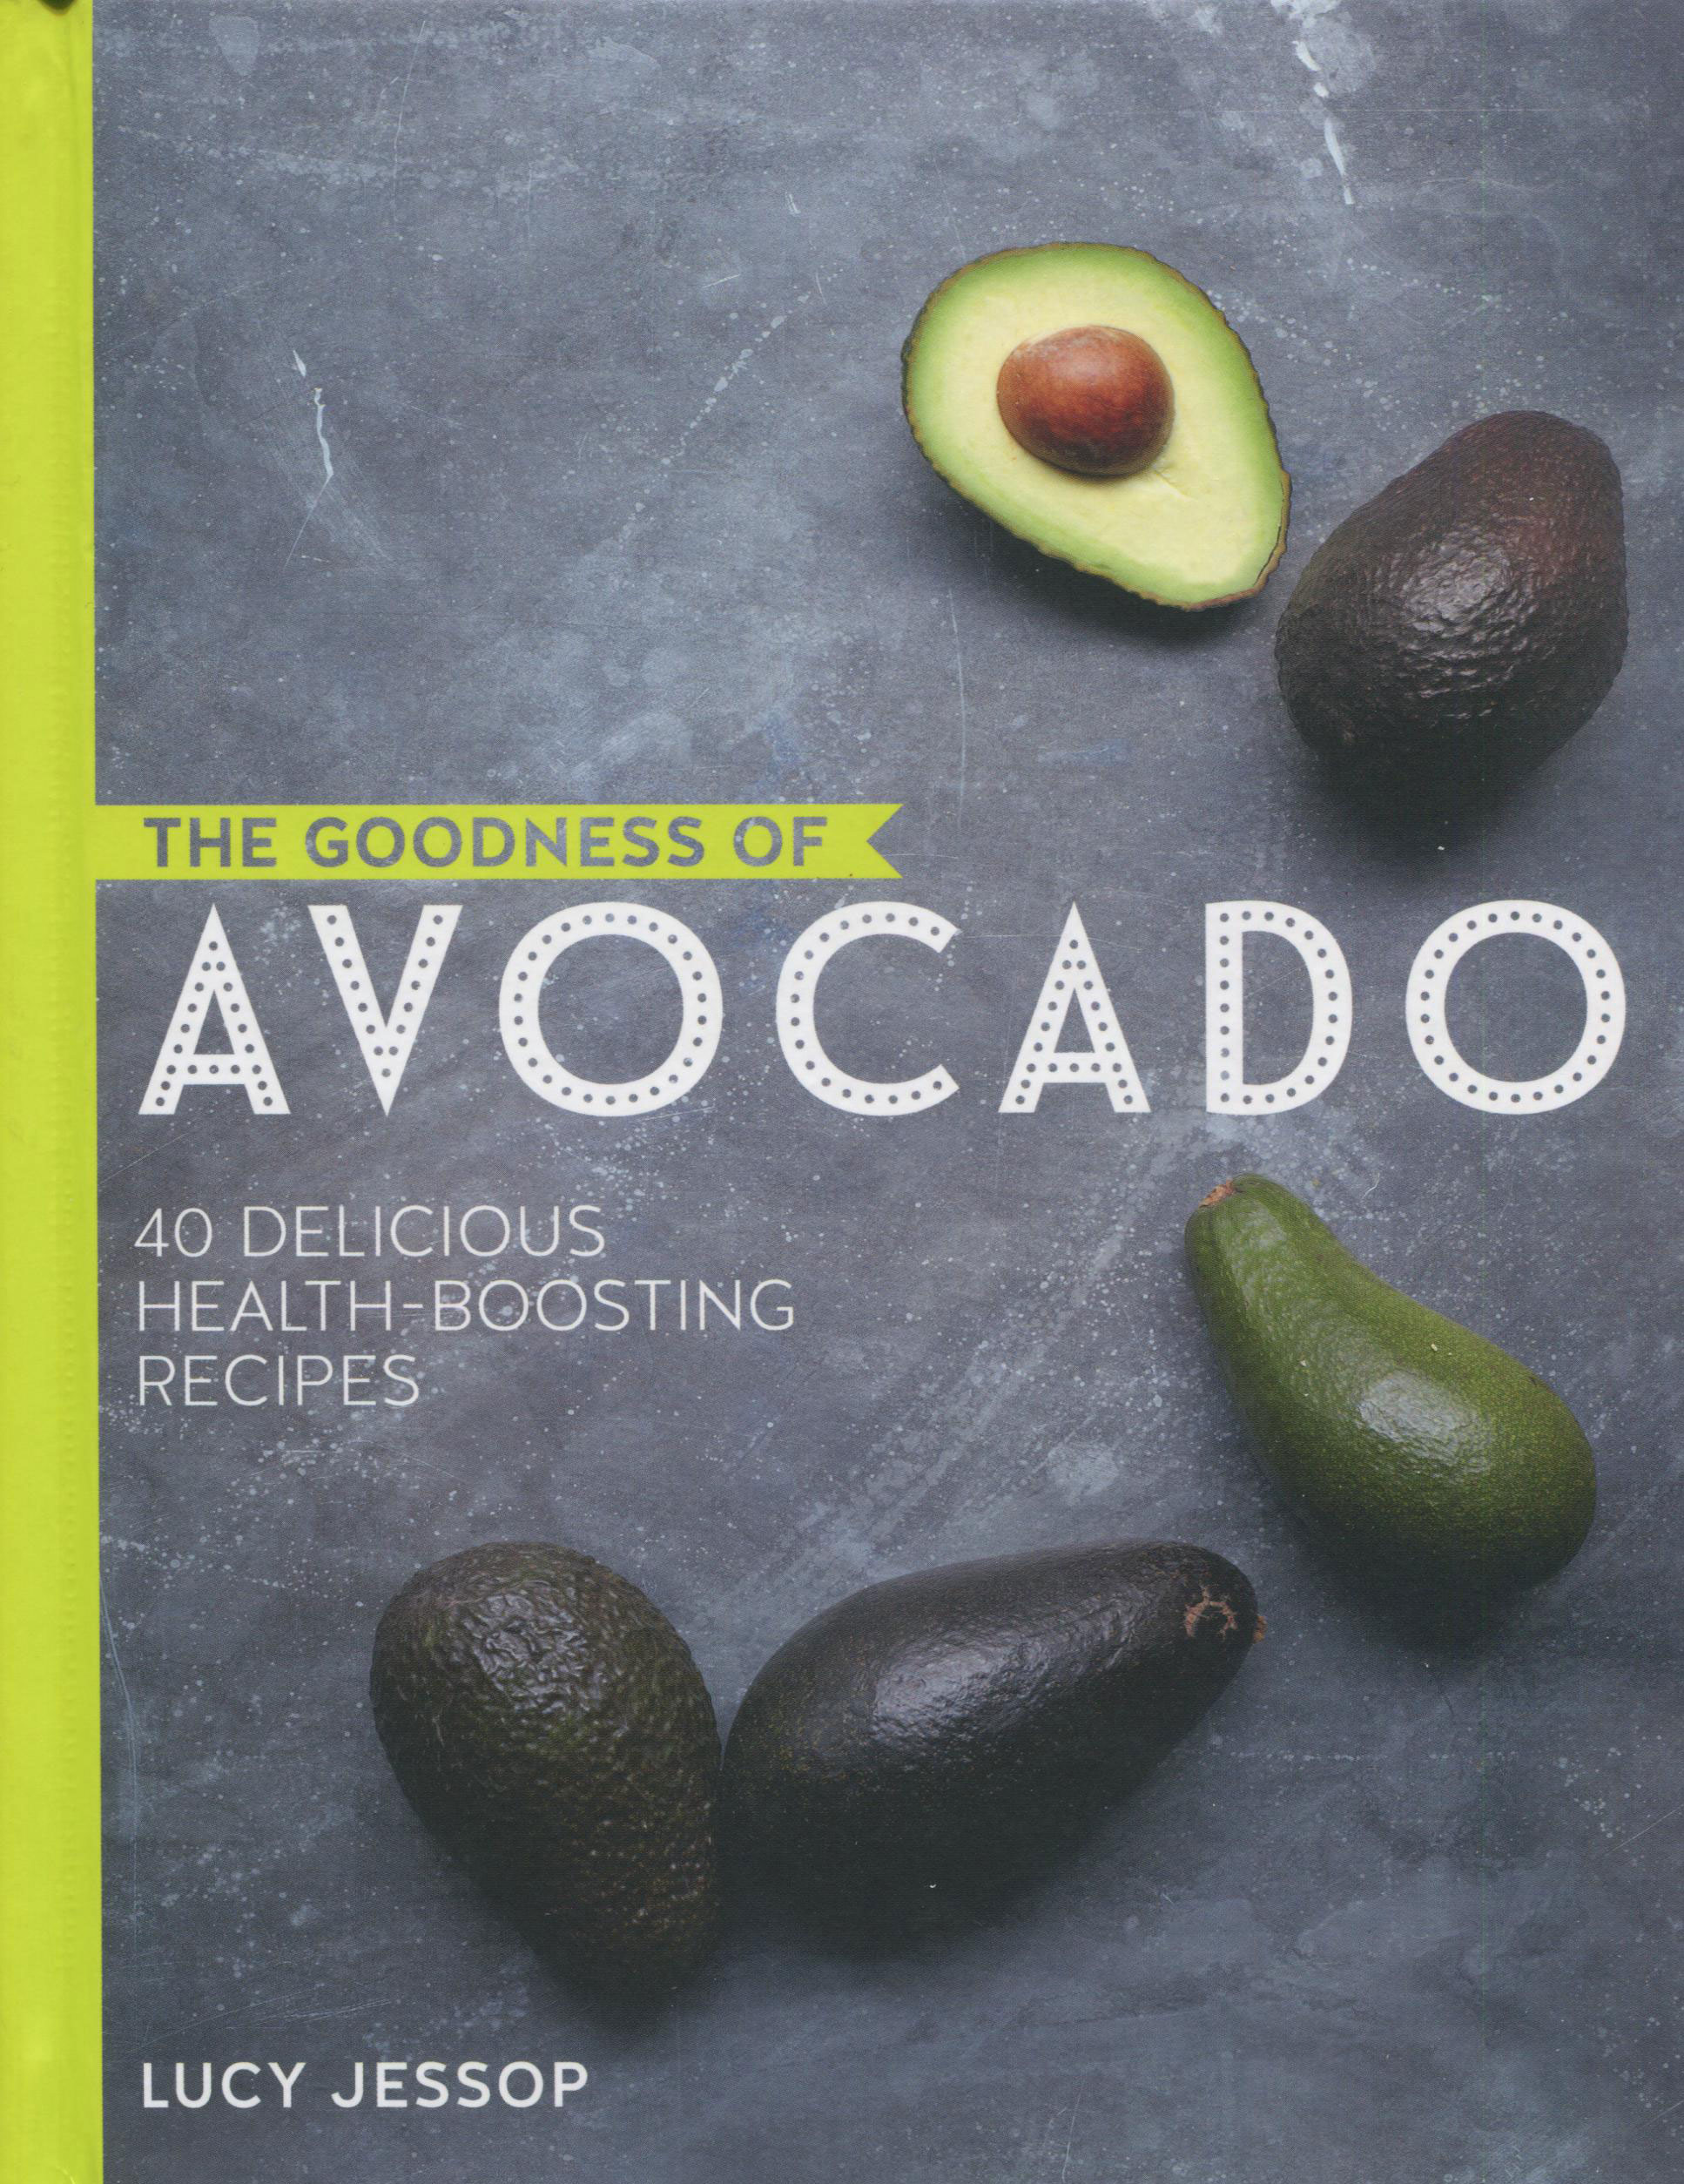 A Summer Cookbook for You While We Are in Yellowstone: The Goodness of Avocado